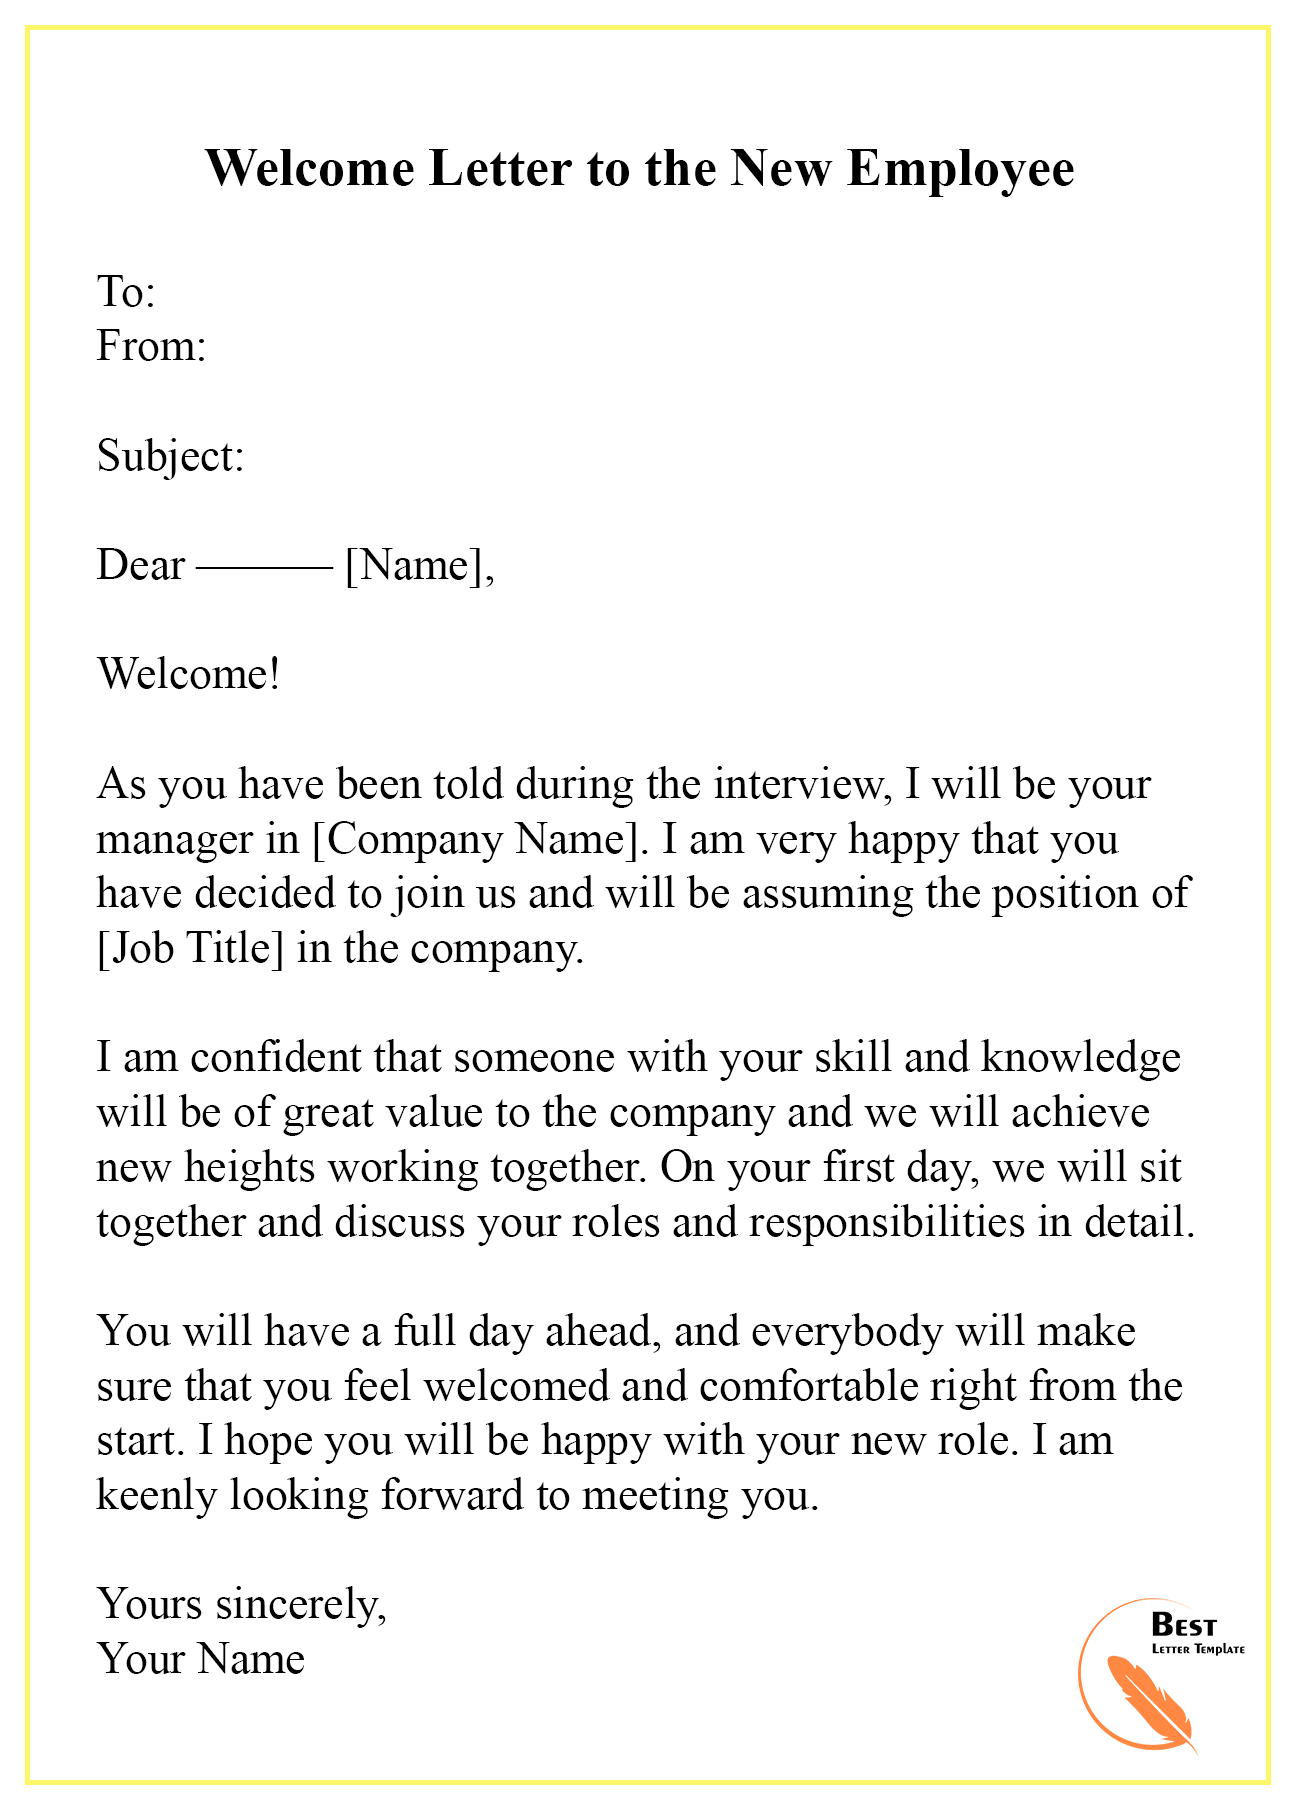 New Employee Welcome Letter Sample from bestlettertemplate.com